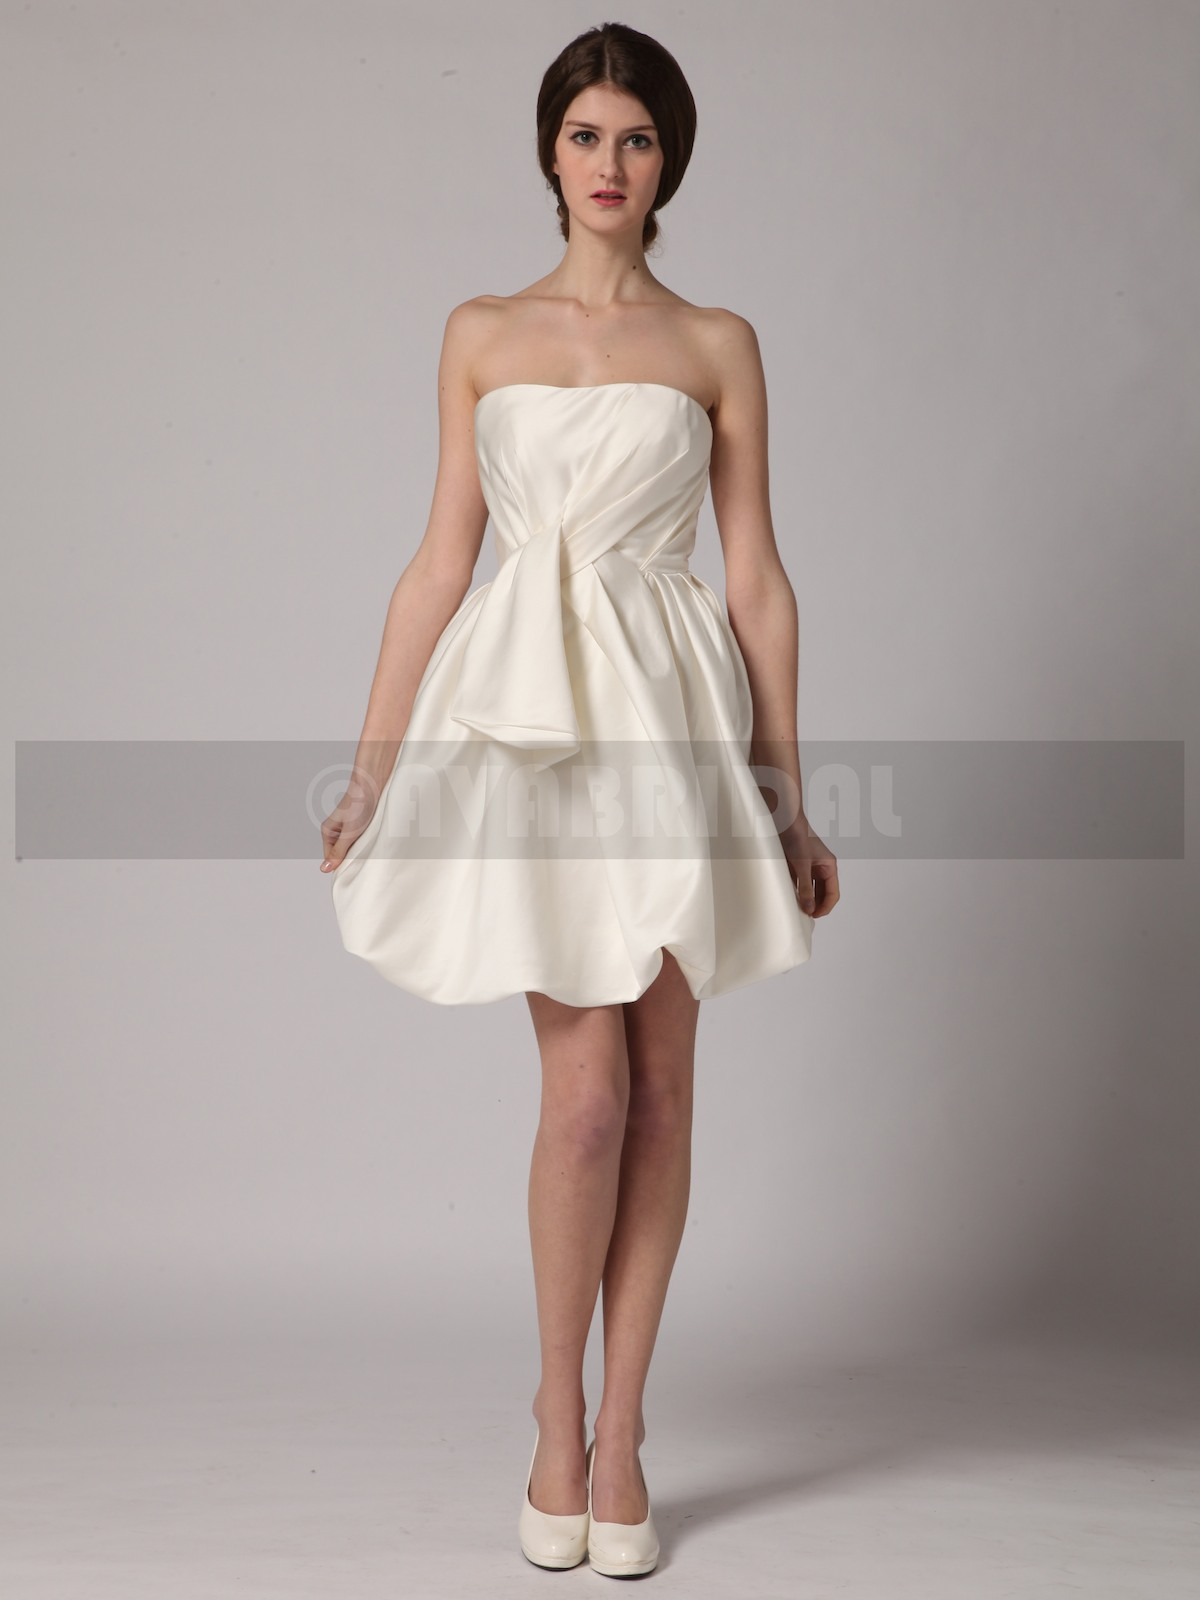 Short Wedding Dress - Daisy - Front